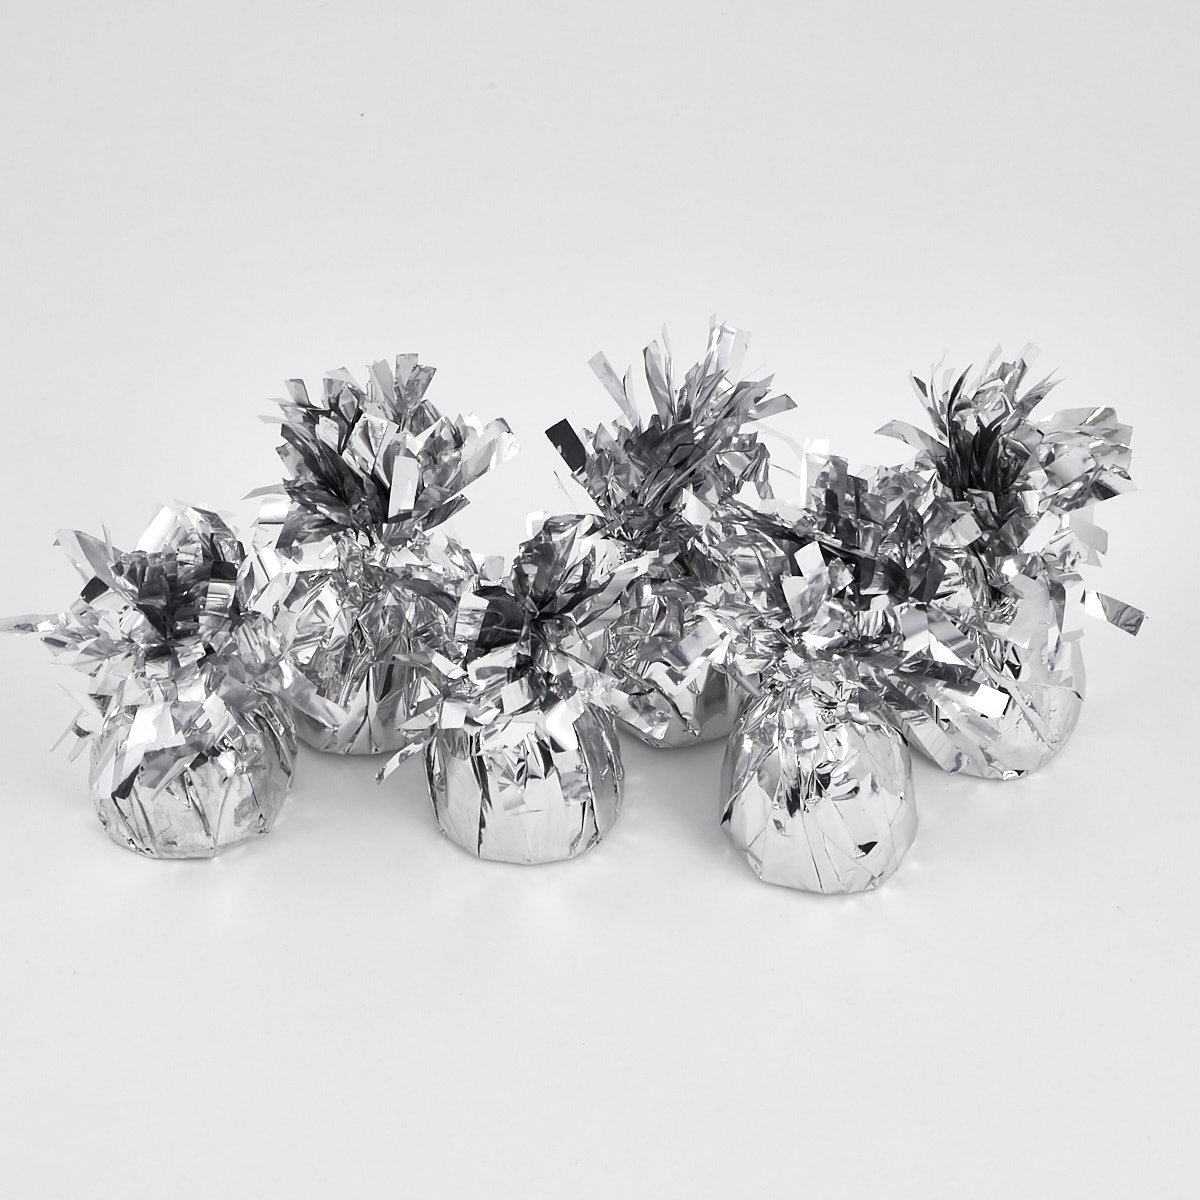 Silver Foil Balloon Weights - Pack of 12